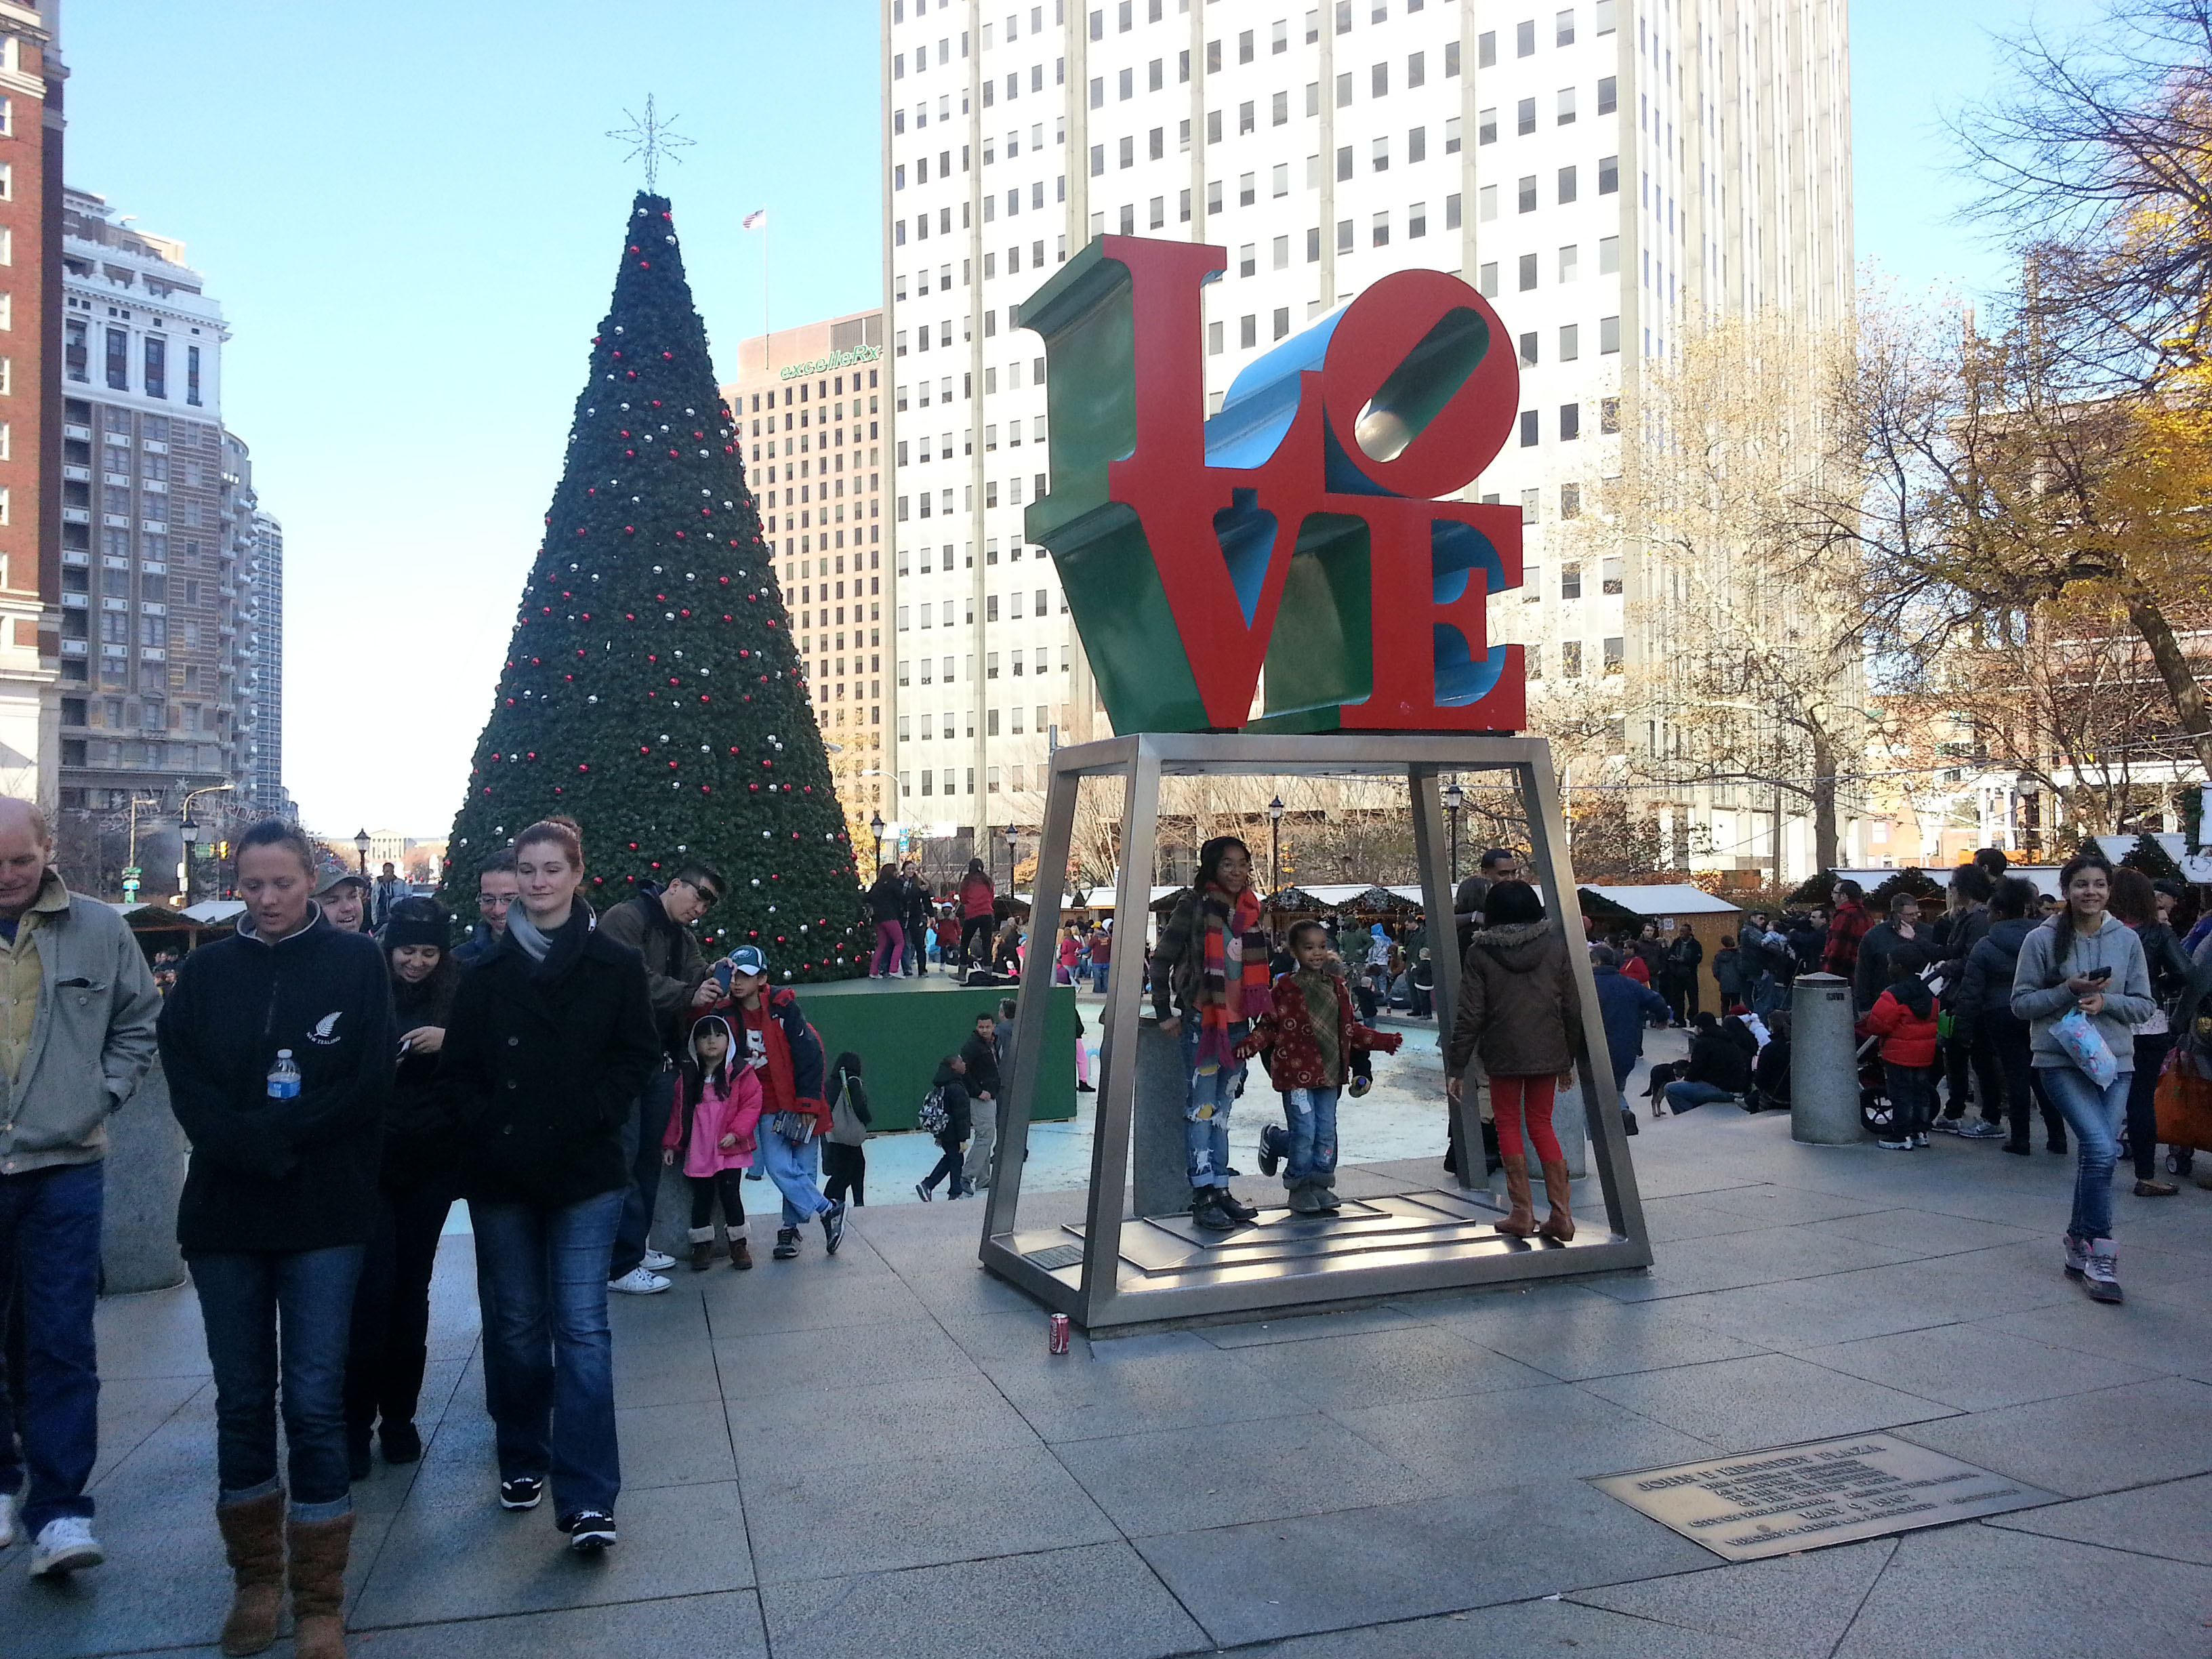 Christmas Village Love Park.Christmas Village Opens In Love Park Cbs Philly